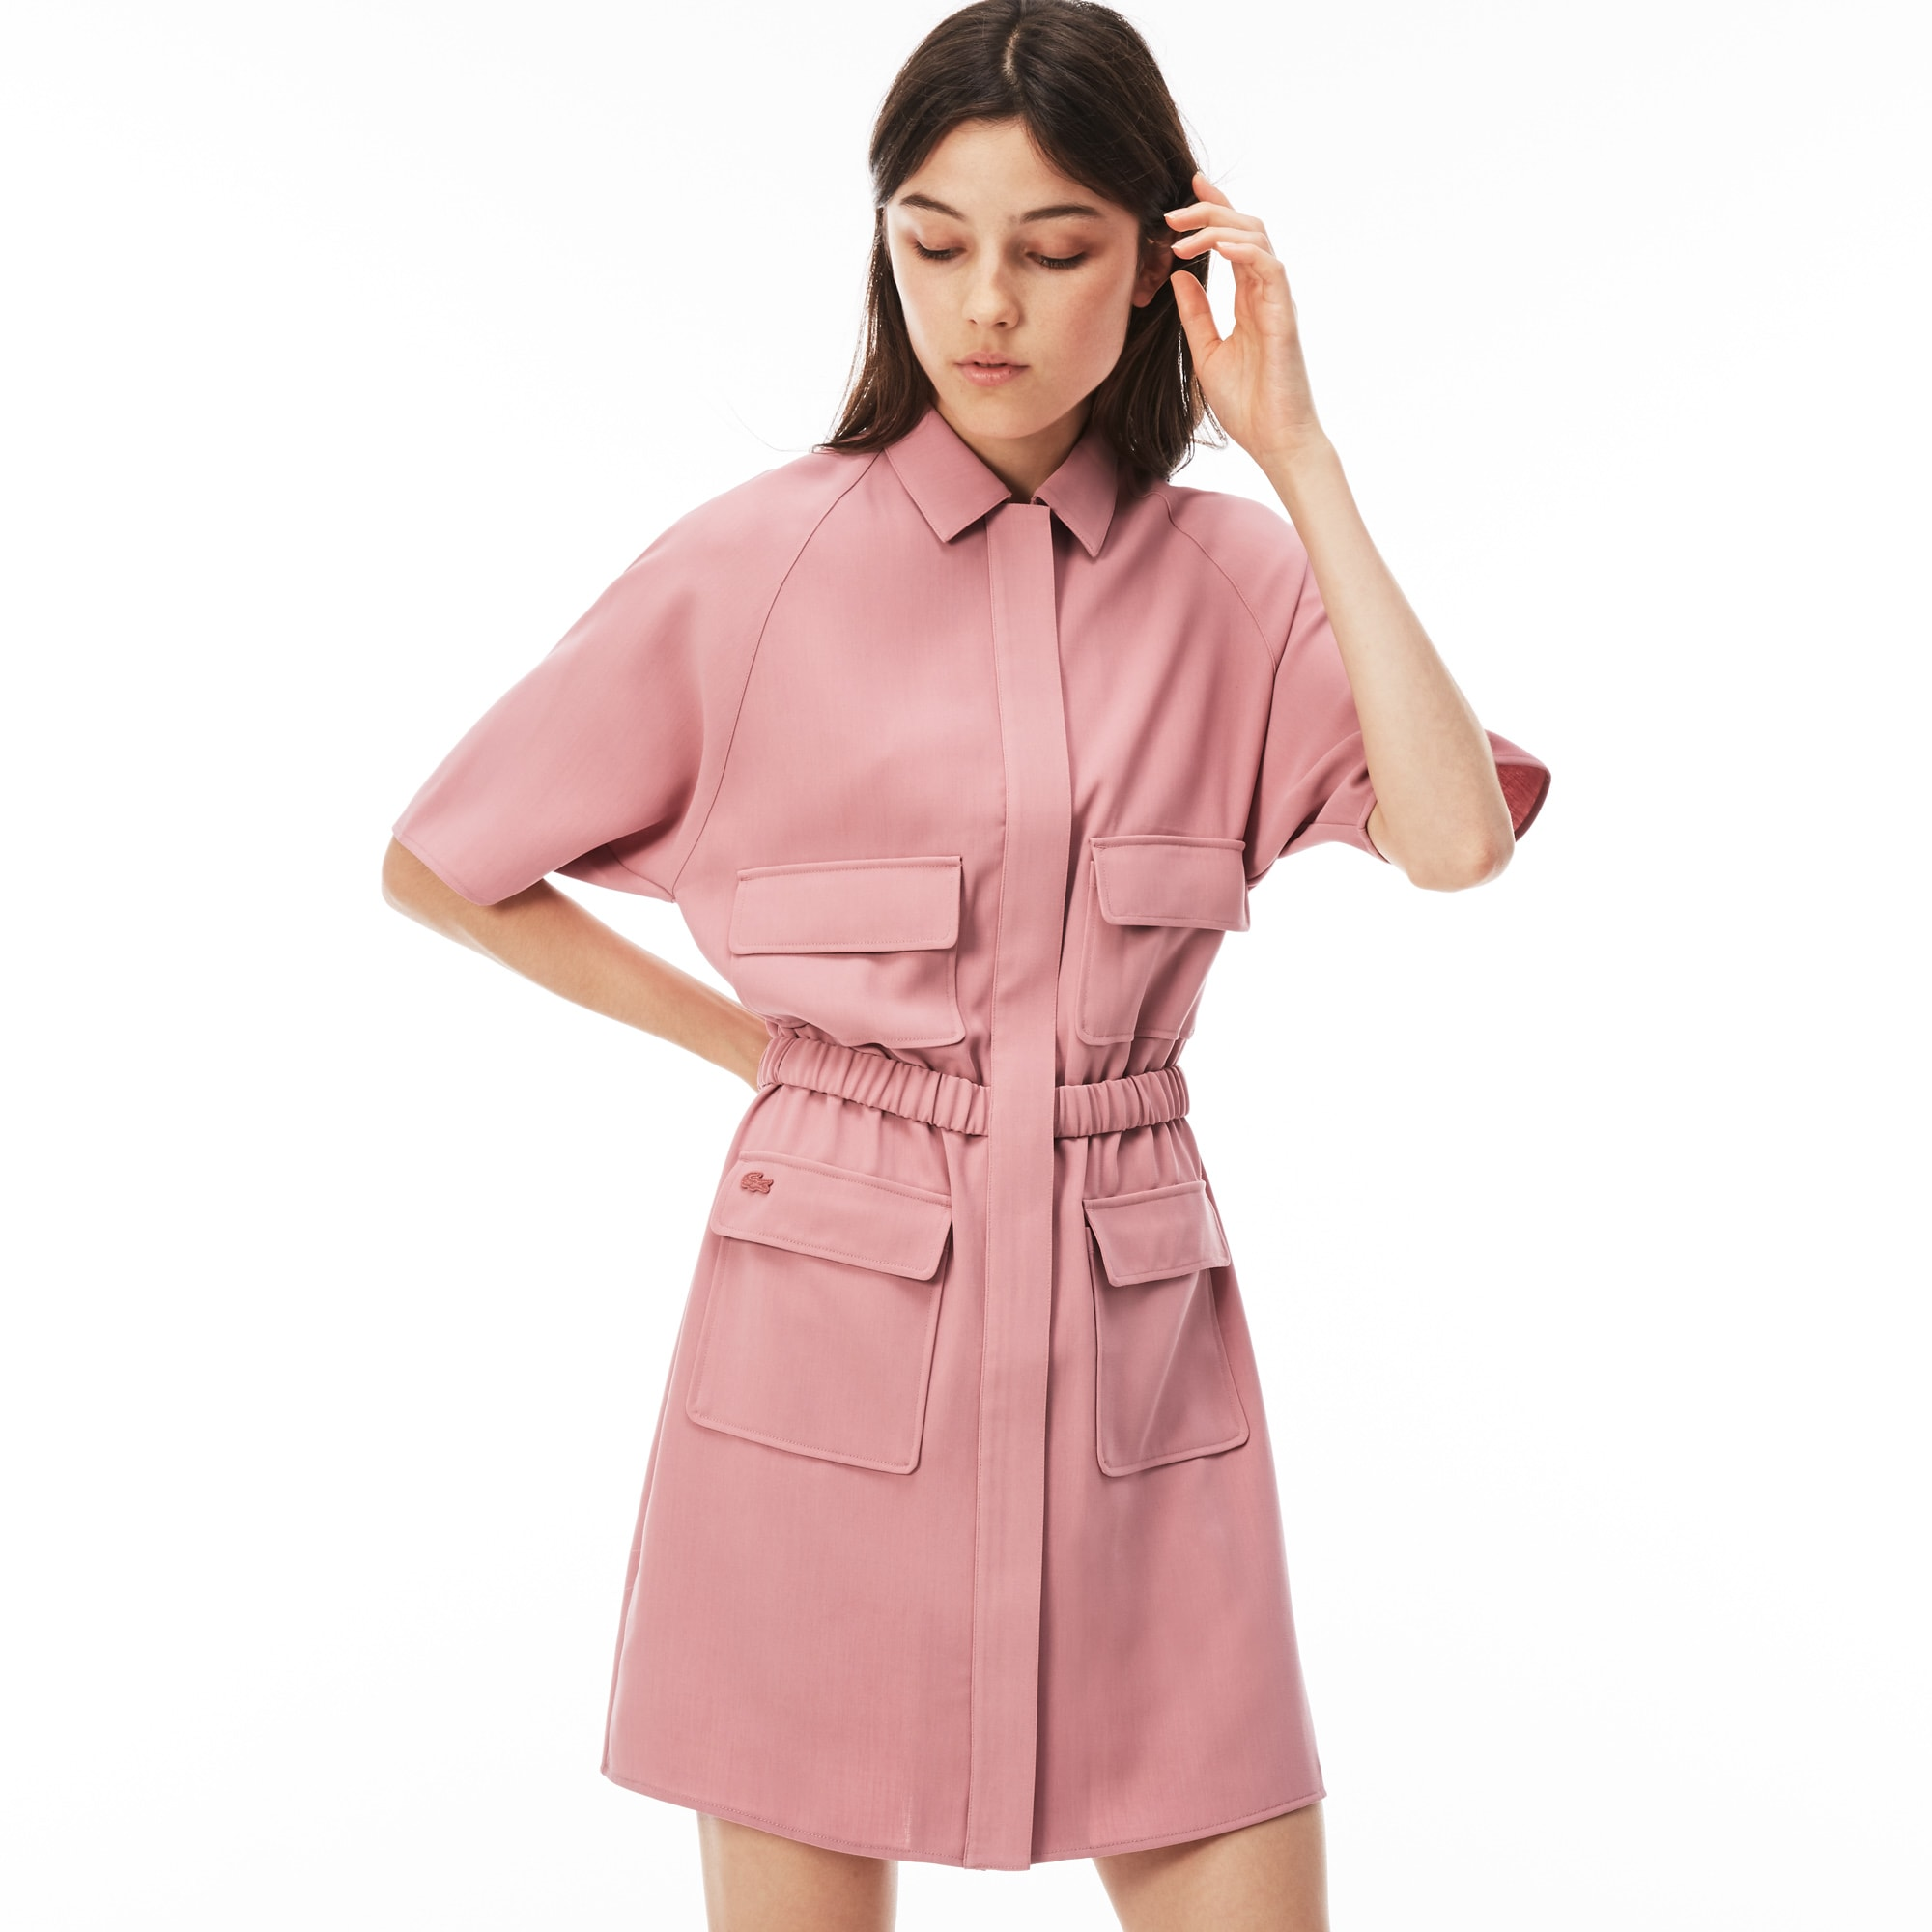 Women's Lacoste LIVE Crepe Zip Dress